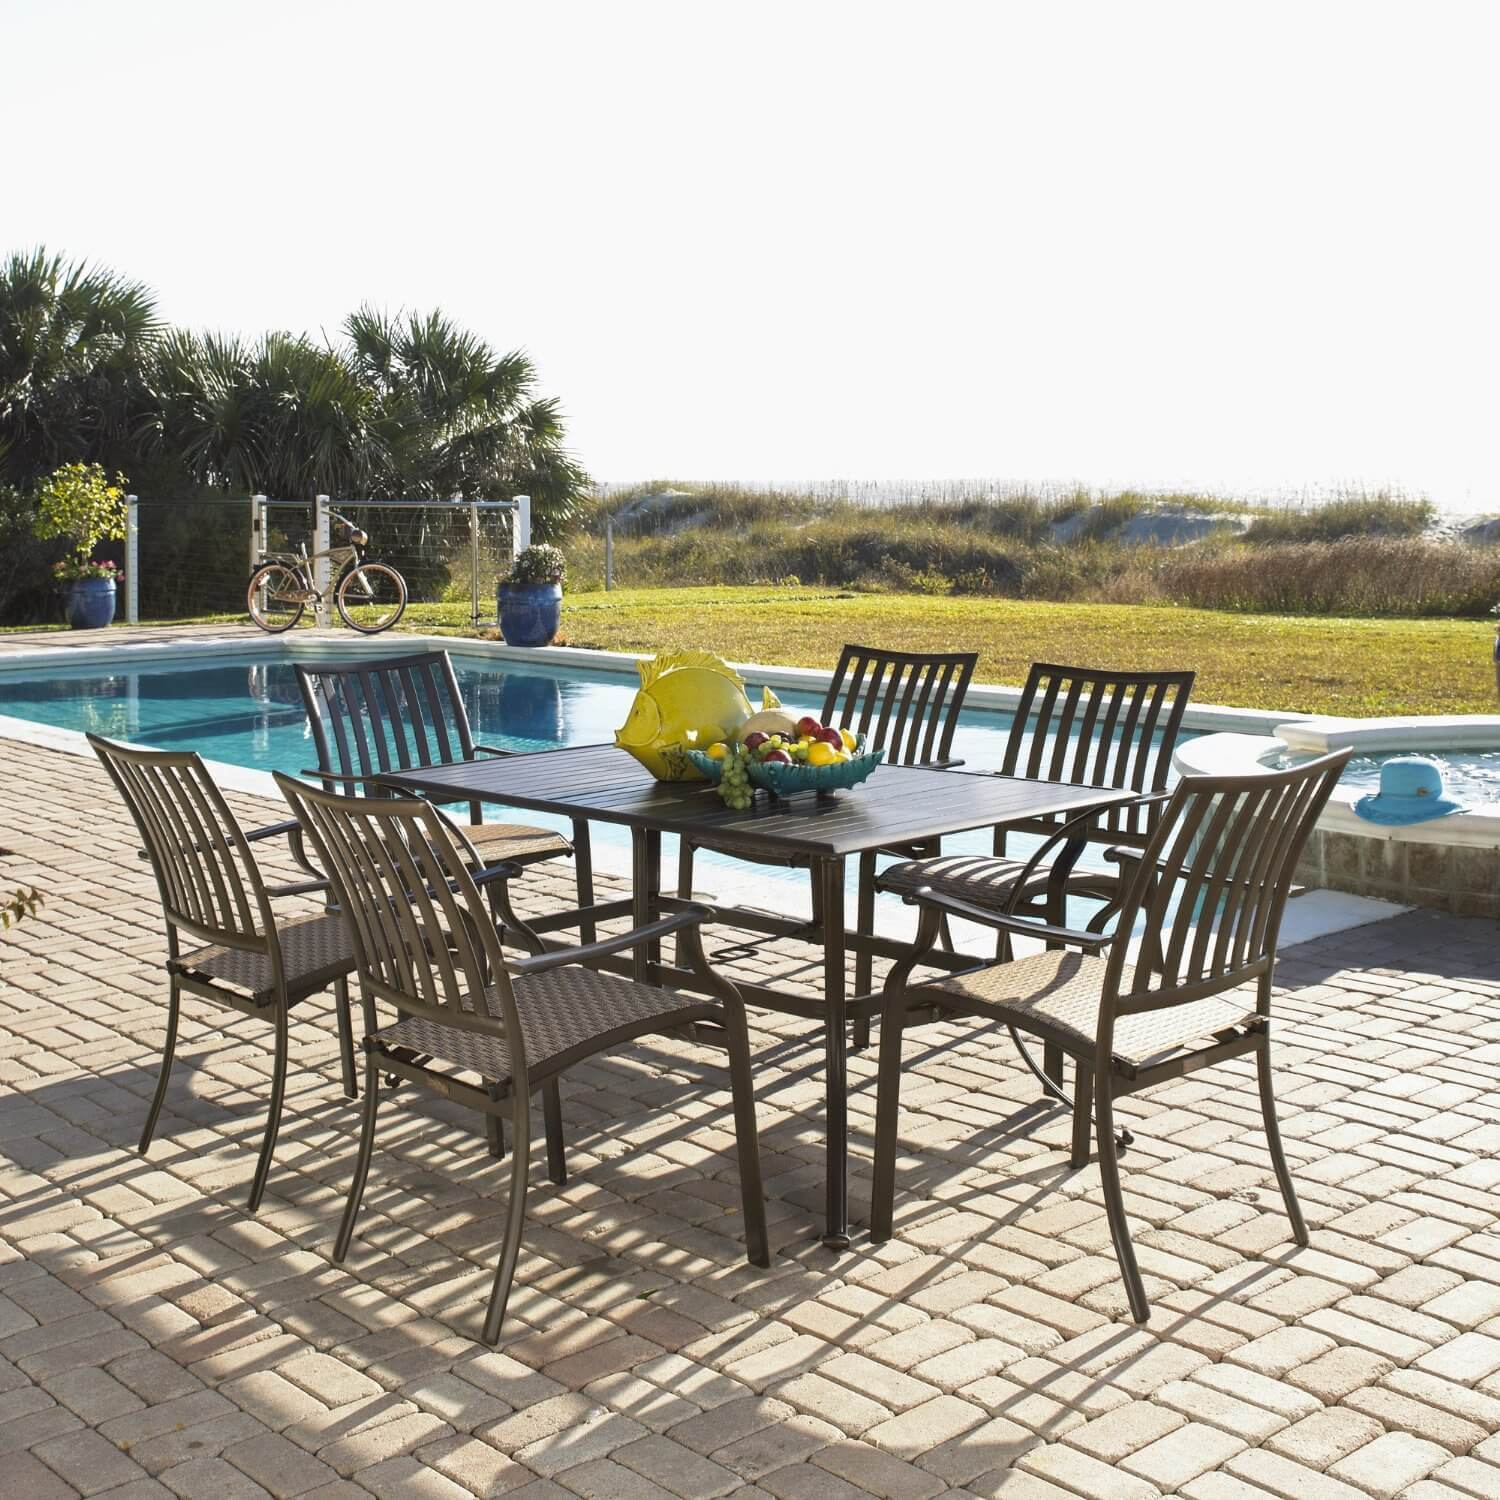 Here is a simple set of patio furniture set poolside on a stone patio. While simplistic, these chairs can be quite comfortable and relaxing.